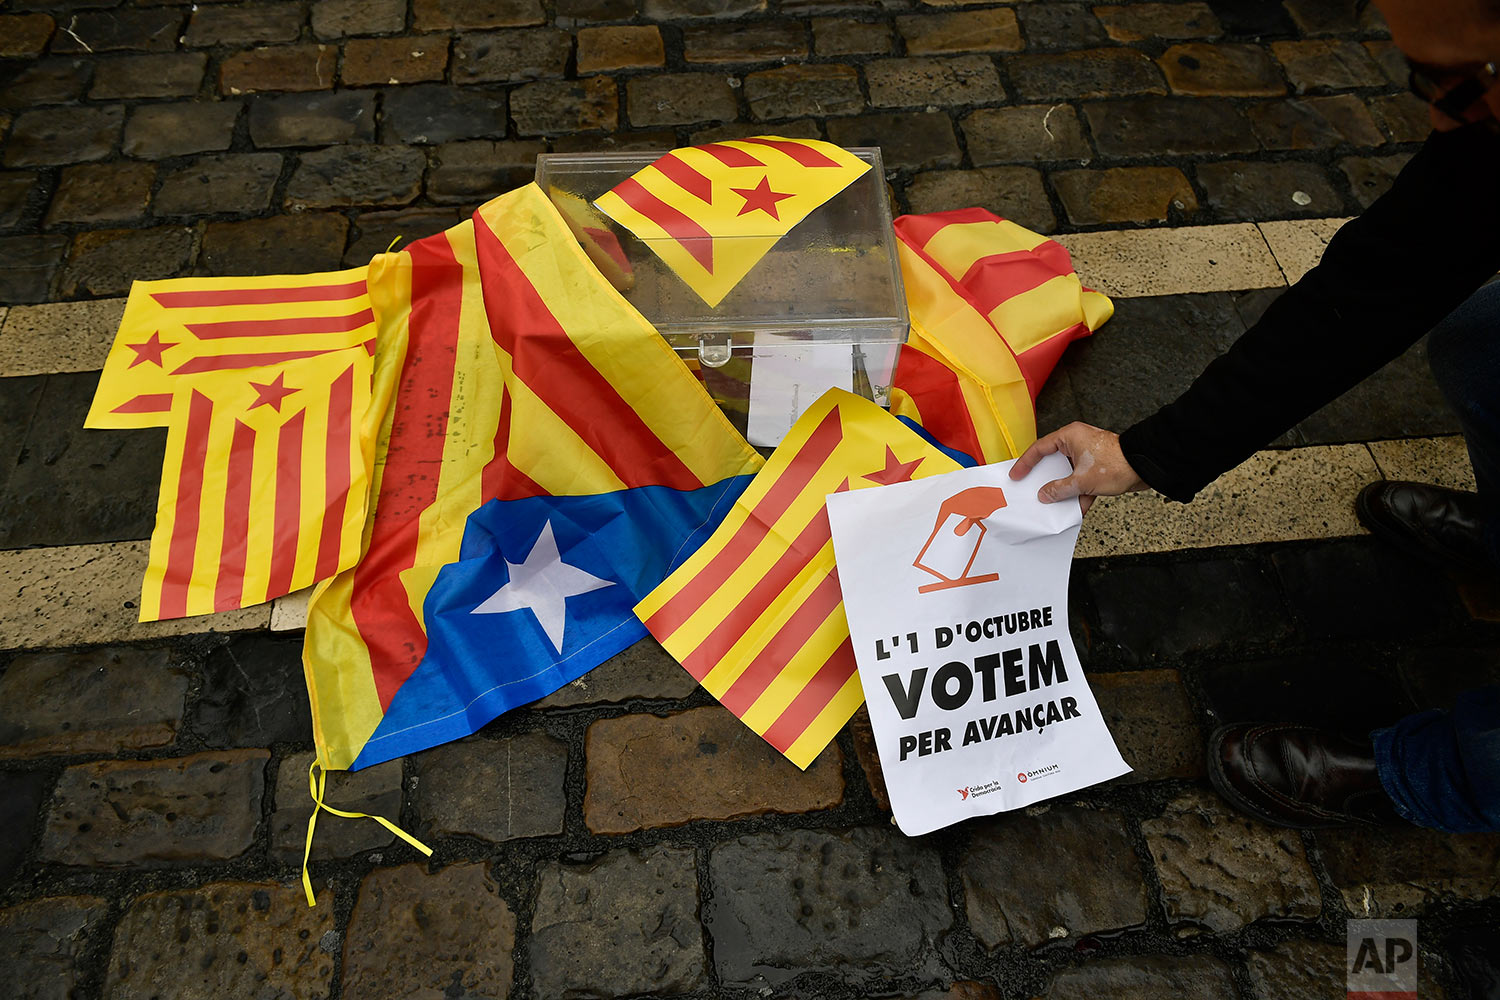 A pro independences supporter holds up a sign calling for the vote close to a mock ballot boxes covered with ''esteleda'' or Catalan pro independence flags in support of the Catalonia's secession referendum, in Pamplona, northern Spain, Sunday, Oct. 1, 2017.   Catalonia's regional government is holding a referendum Sunday on the possibility of breaking away from Spain, despite Spain's Constitutional Court ordering the vote to be suspended and prompting a police crackdown.  (AP Photo/Alvaro Barrientos)